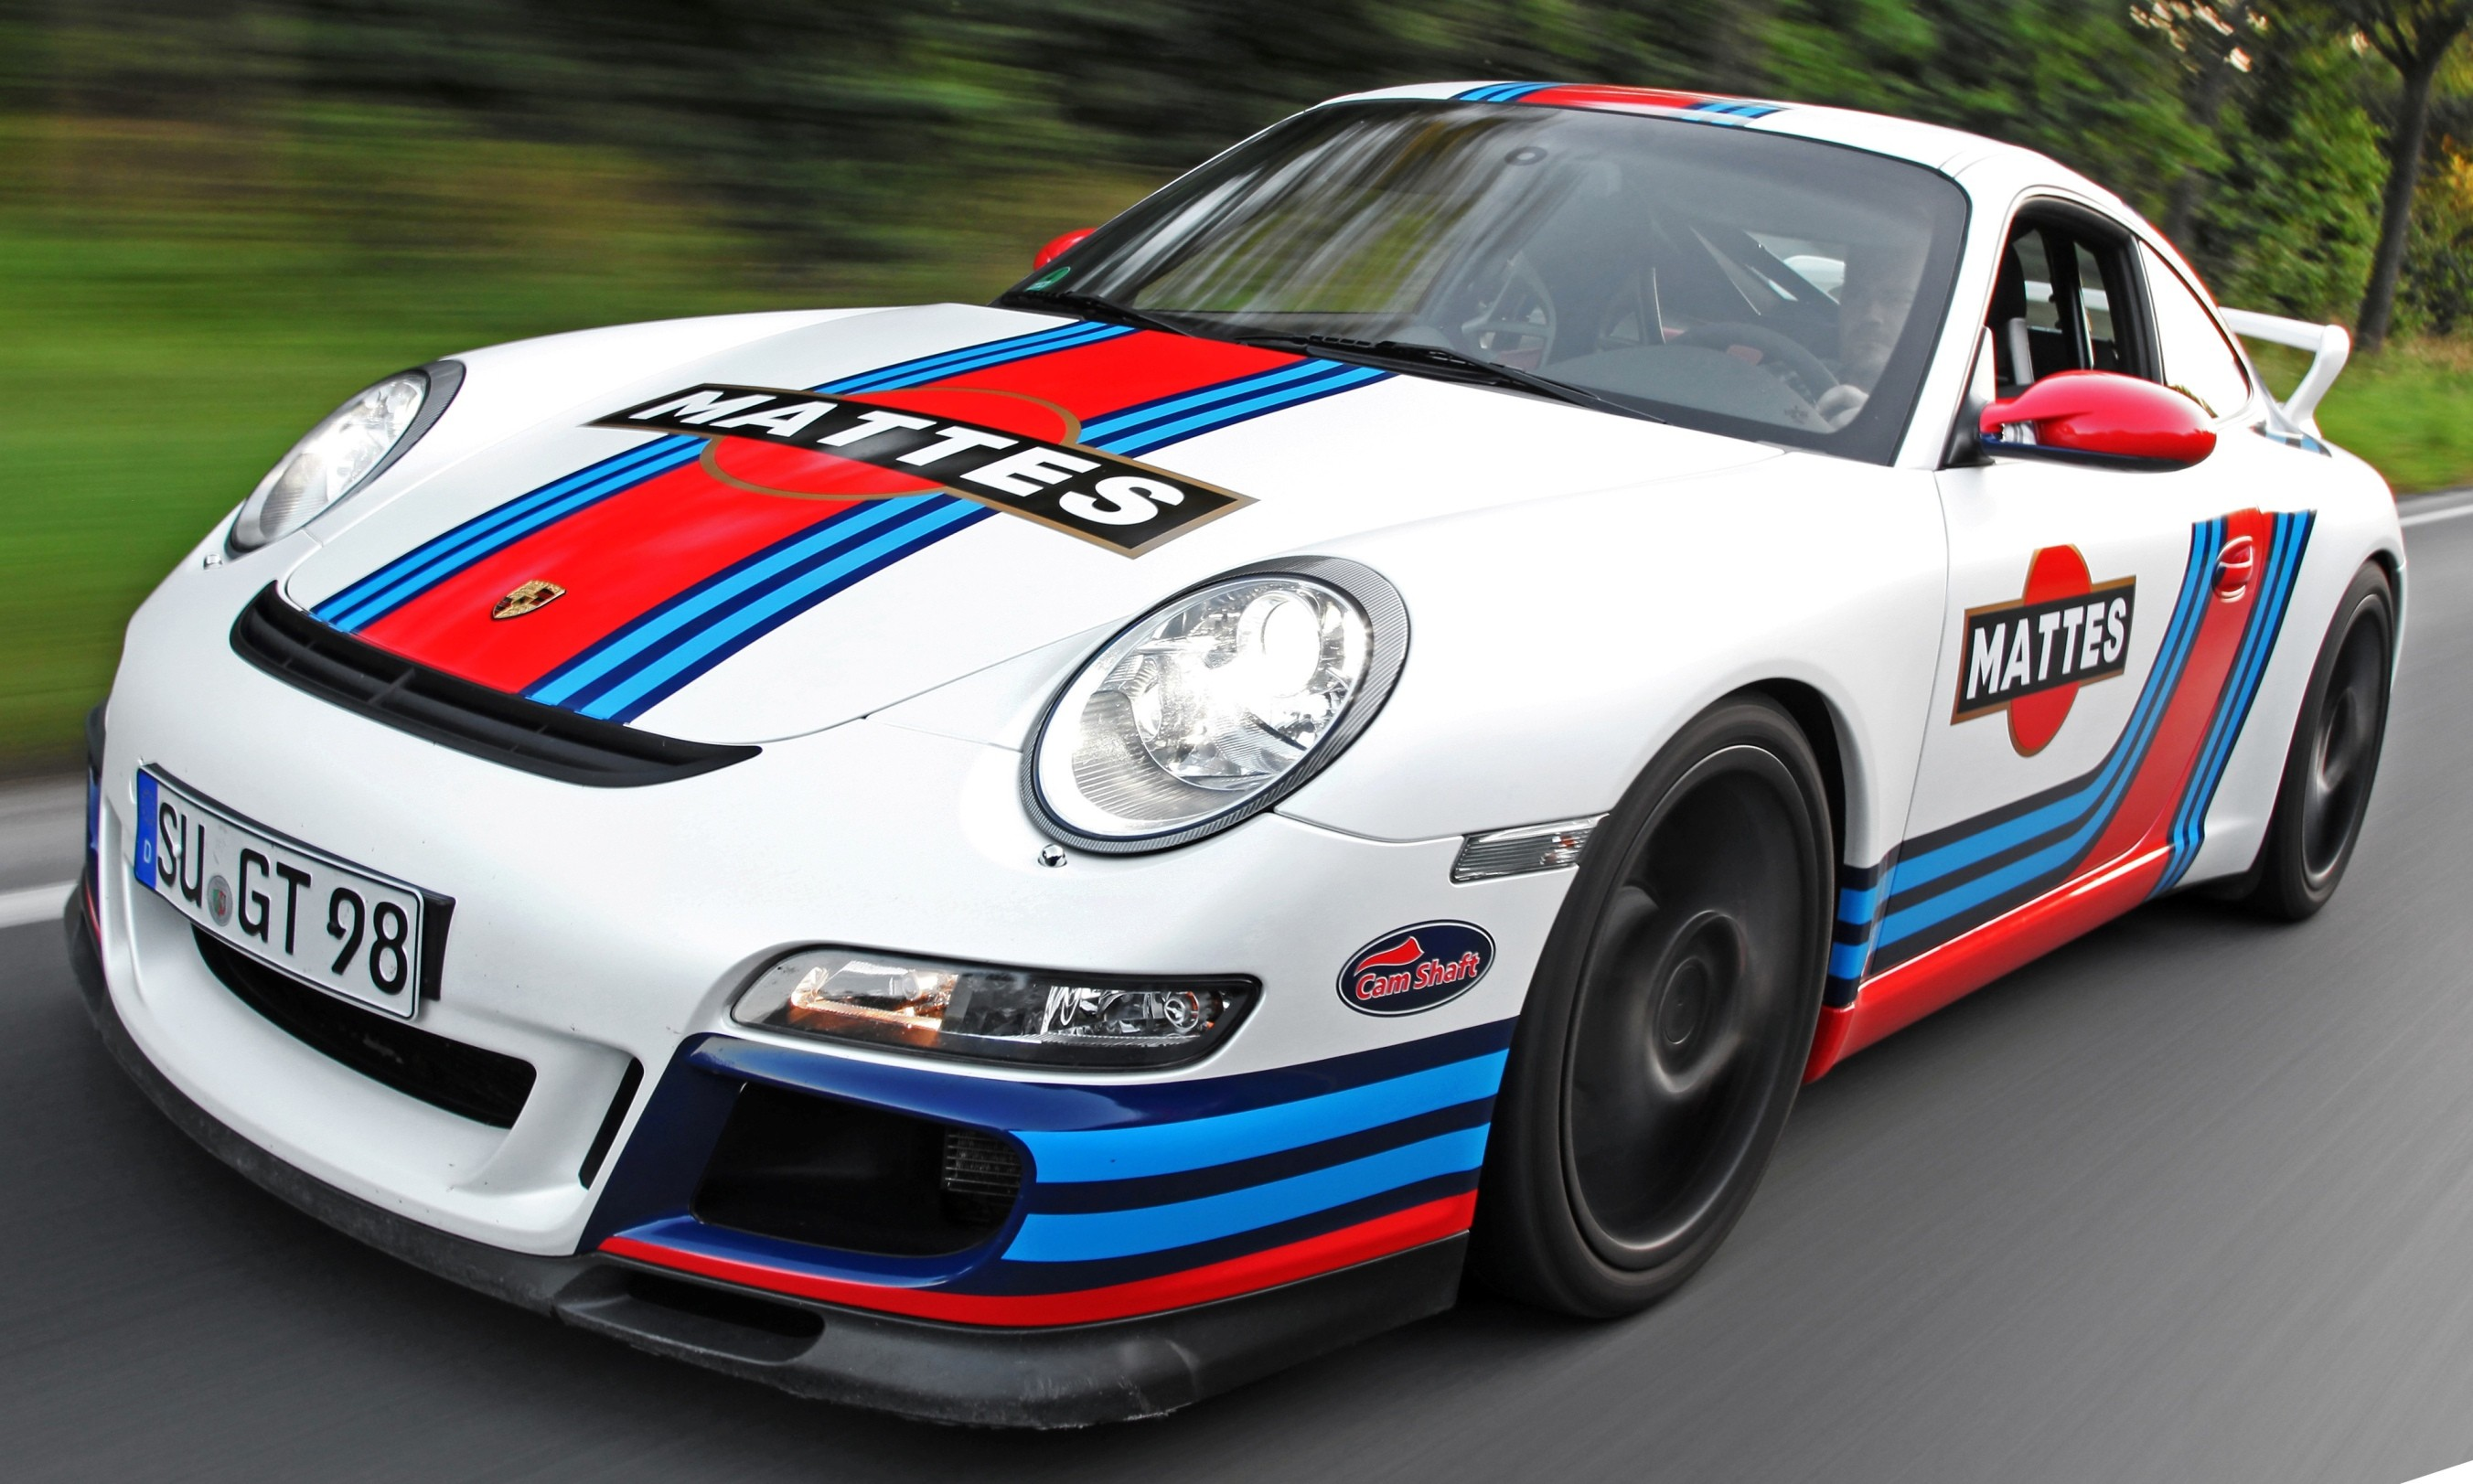 martini style racing livery by cam shaft for the porsche 911 gt3 14